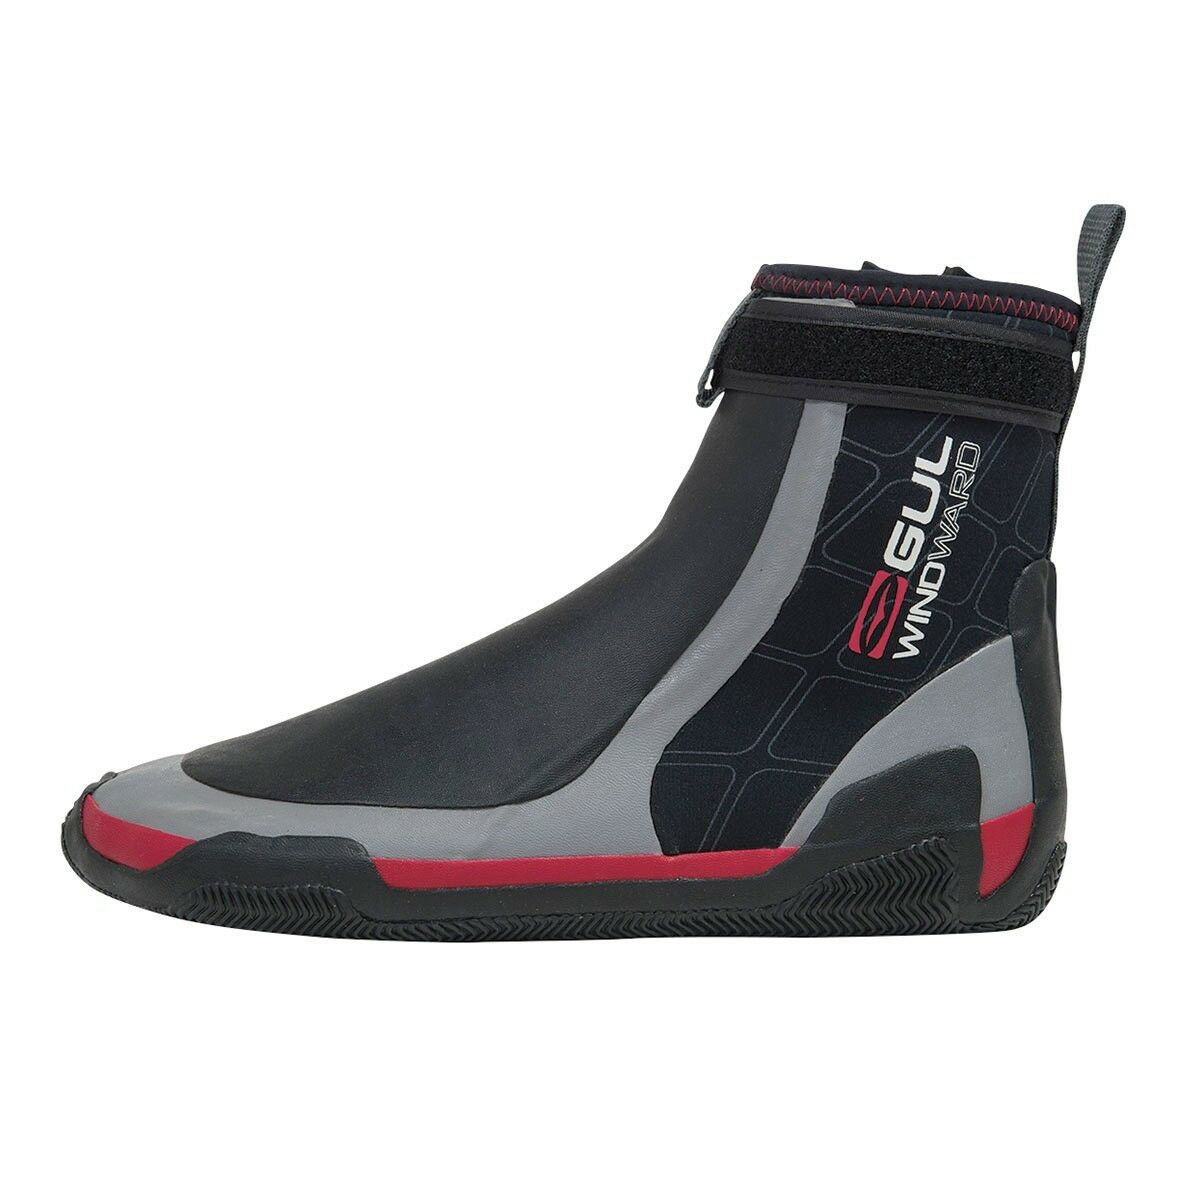 GUL CODE ZERO 5MM WINDWARD PRO BOOTS SURFING HIKING JETSKI CANOE KAYAK SIZE 10